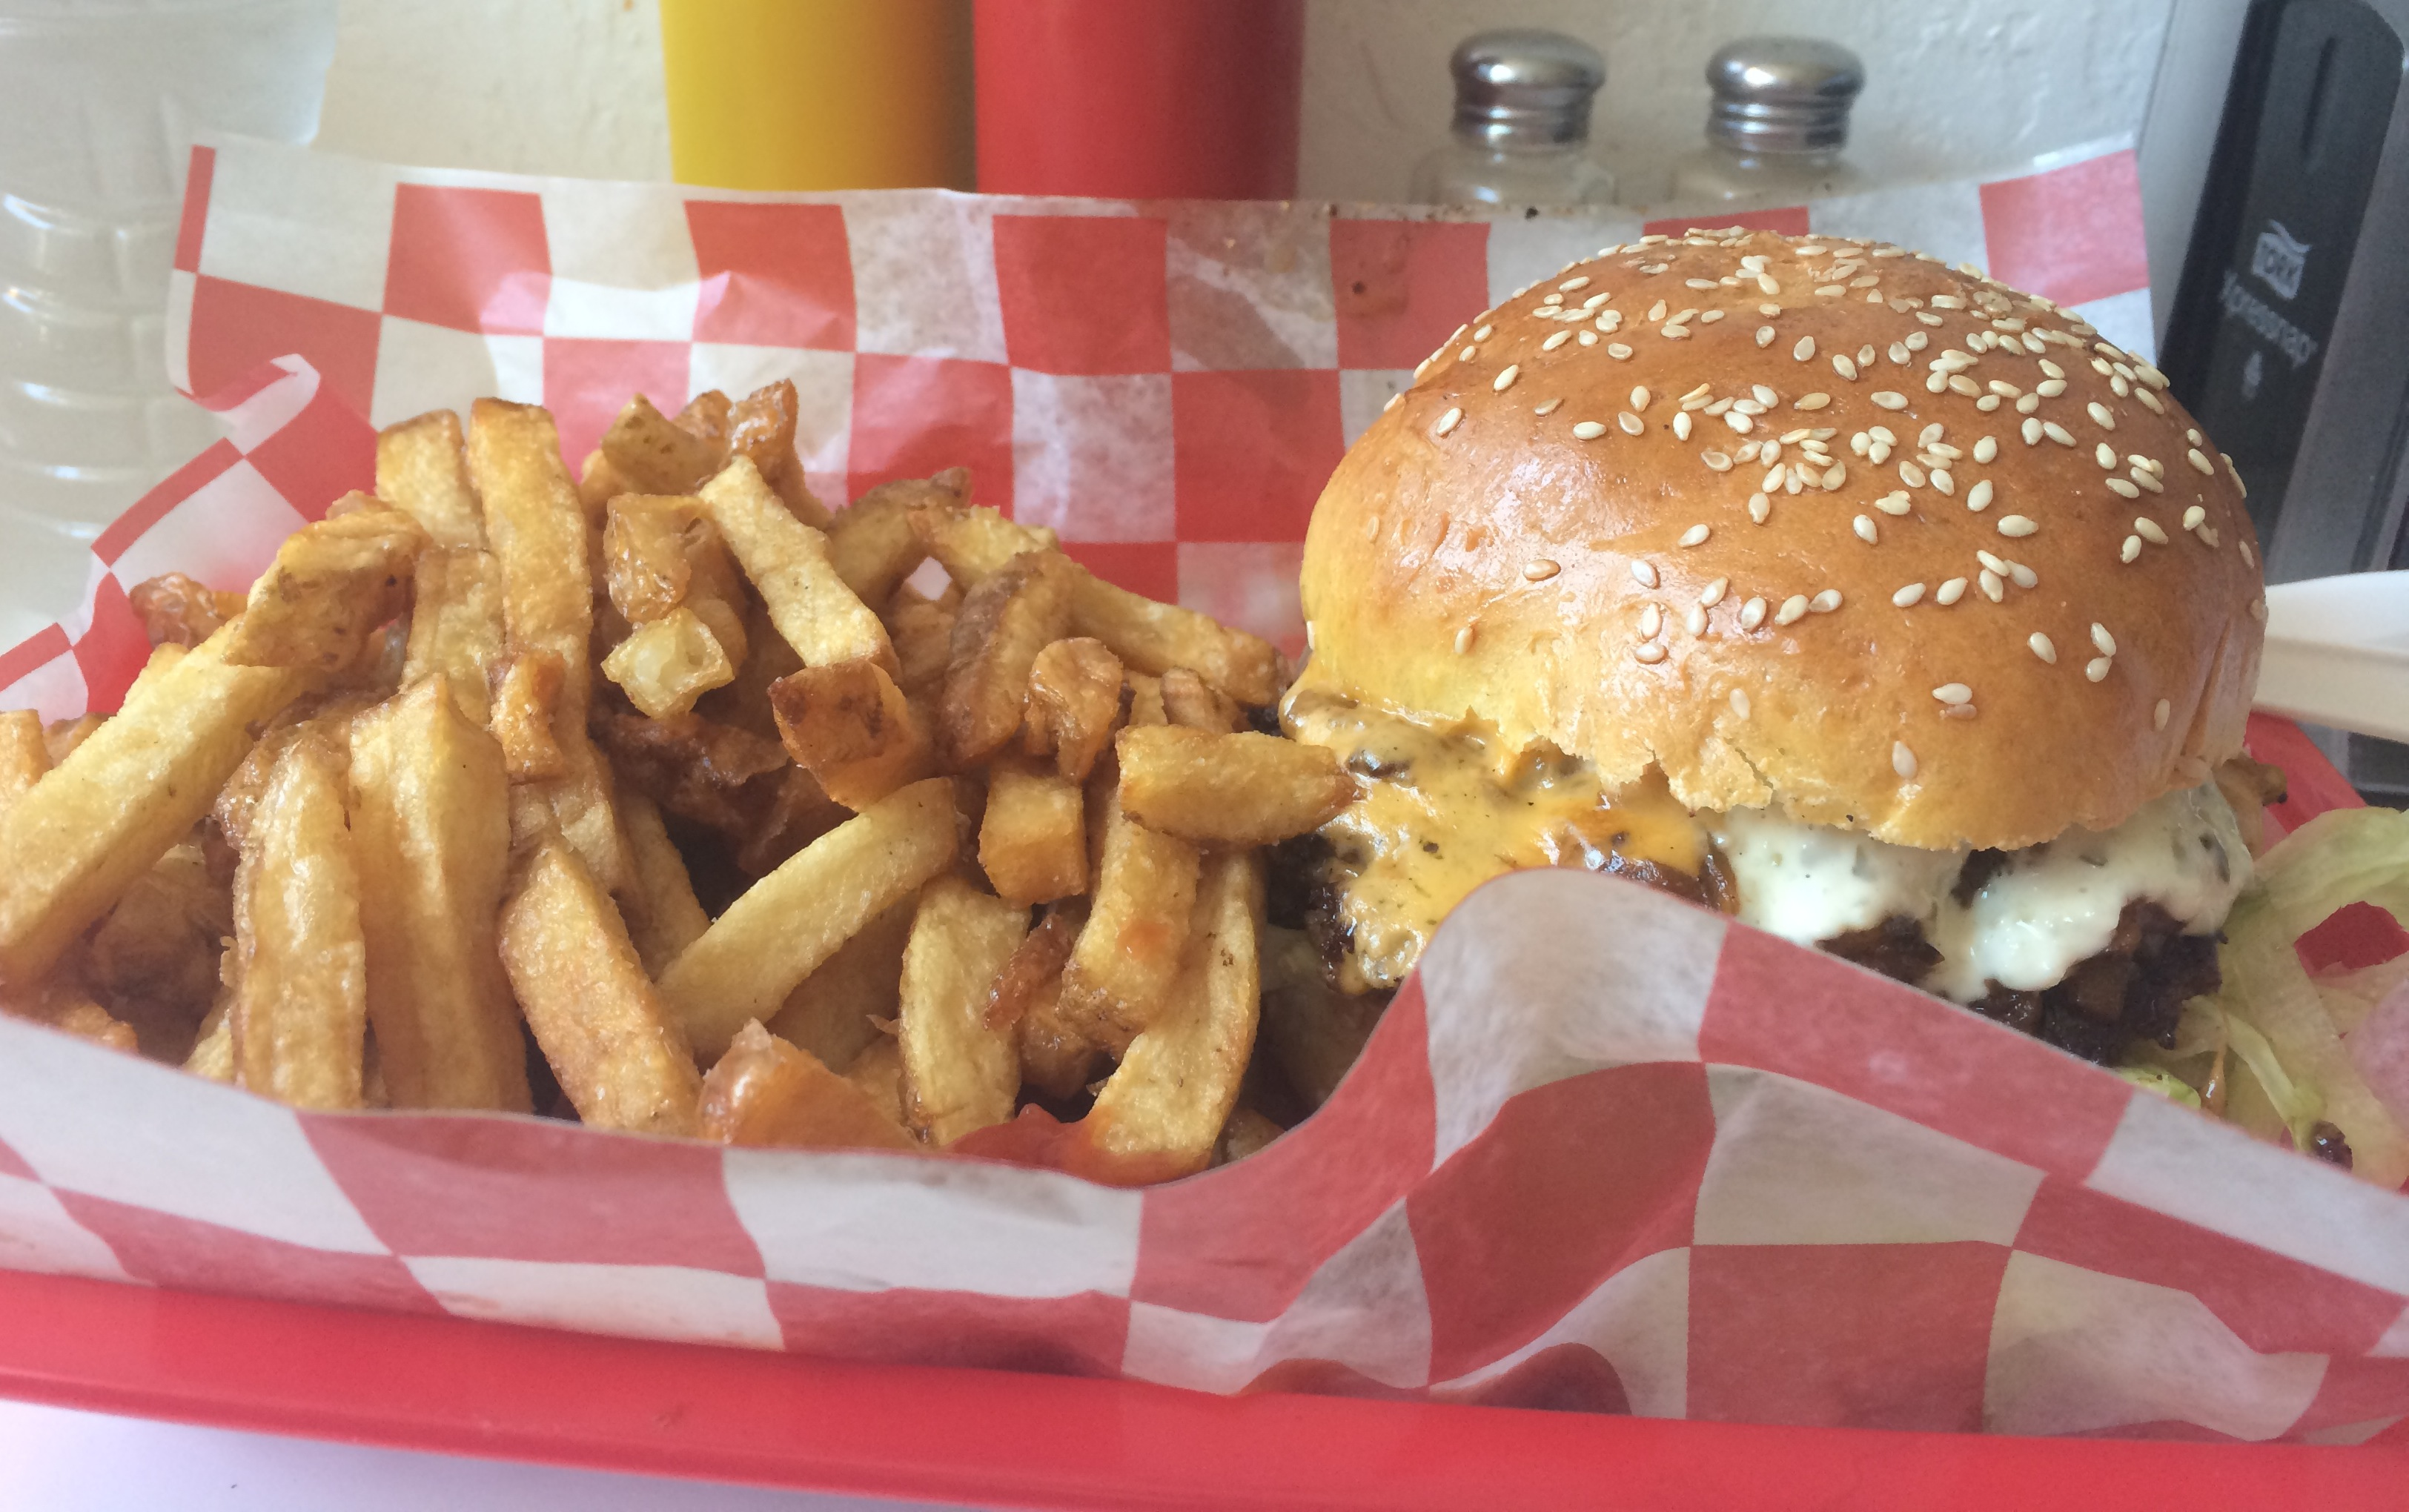 Latest Best of article: Best Toronto Restaurants for Cheeseburgers